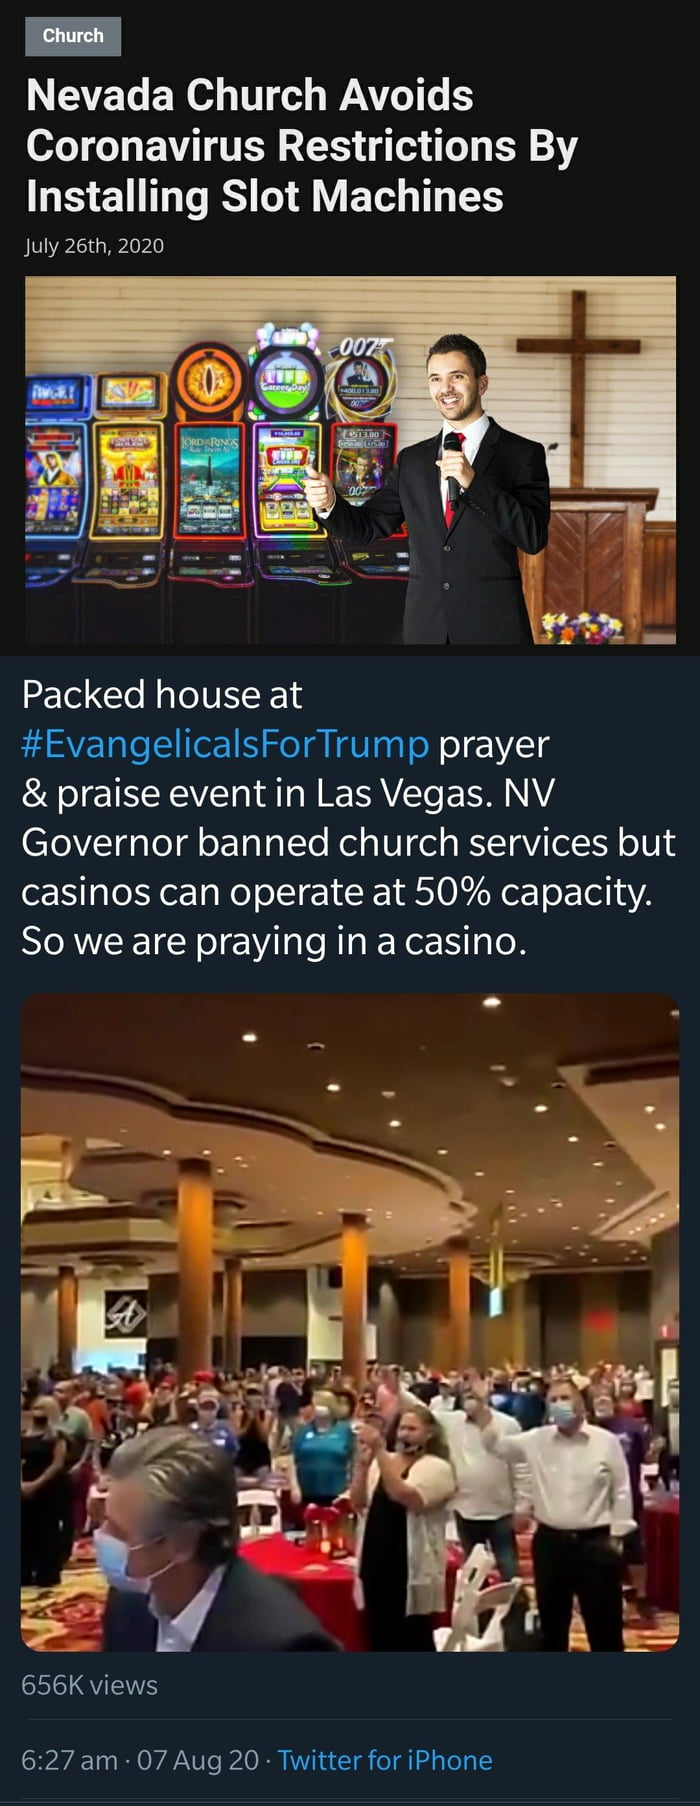 Nevada Church Avoids Coronavirus Restrictions By Installing Slot Machines  July 26th, 2020     Packed house at #EvangelicalsForTrump prayer  & praise event in Las Vegas. NV Governor banned church services but casinos can operate at 50% capacity. So we are praying in a casino.     656K views  6:27 am - 07 Aug 20 ~Twitter for iPhone